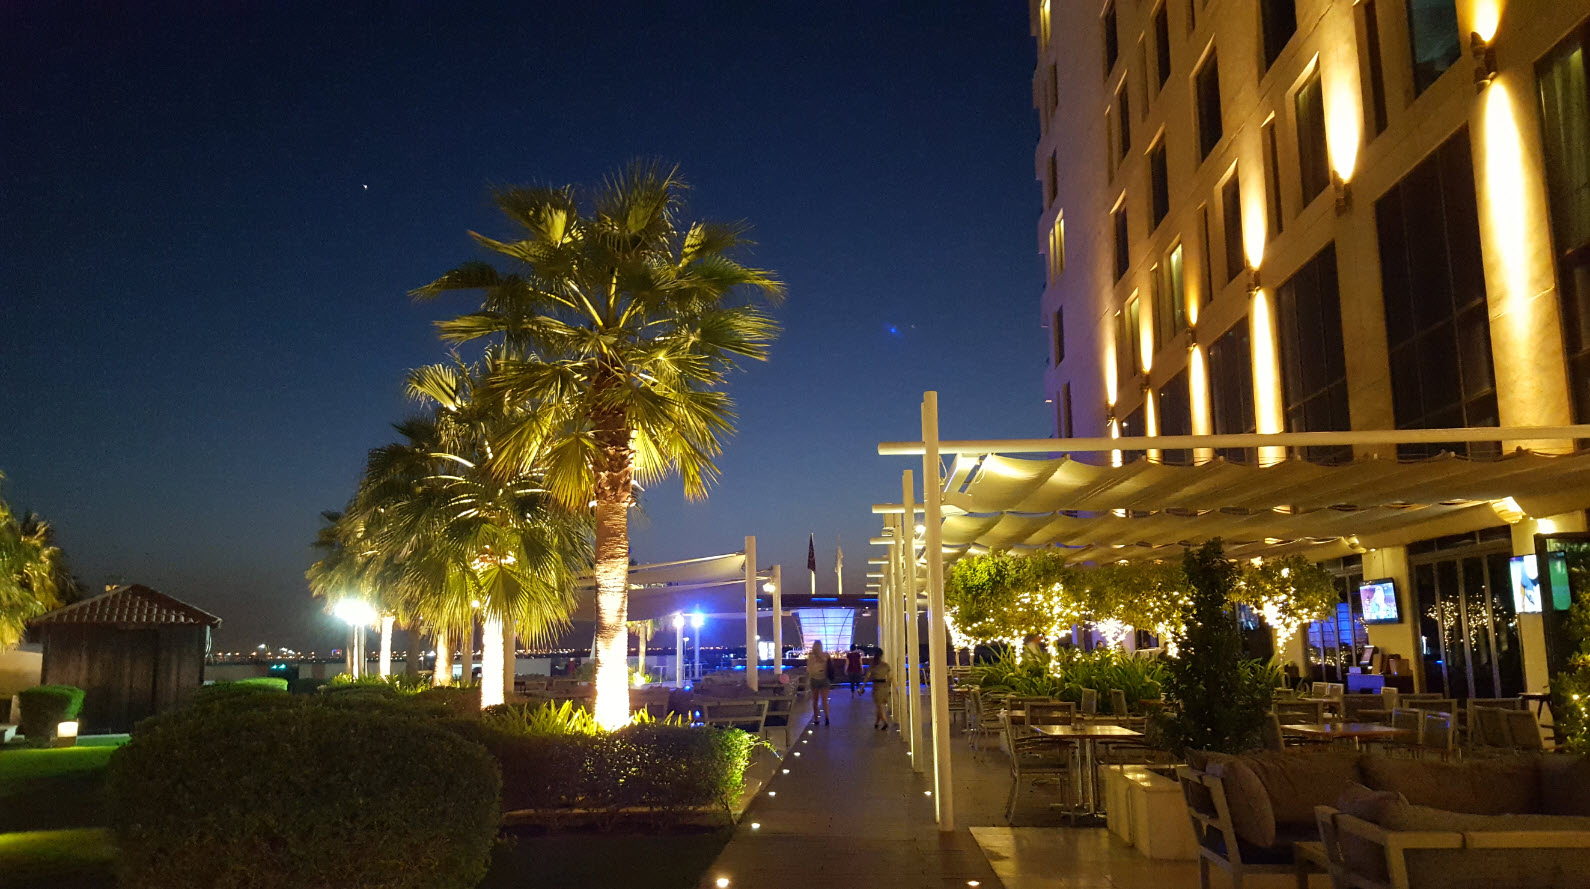 Stils Crown Plaza Yas Island